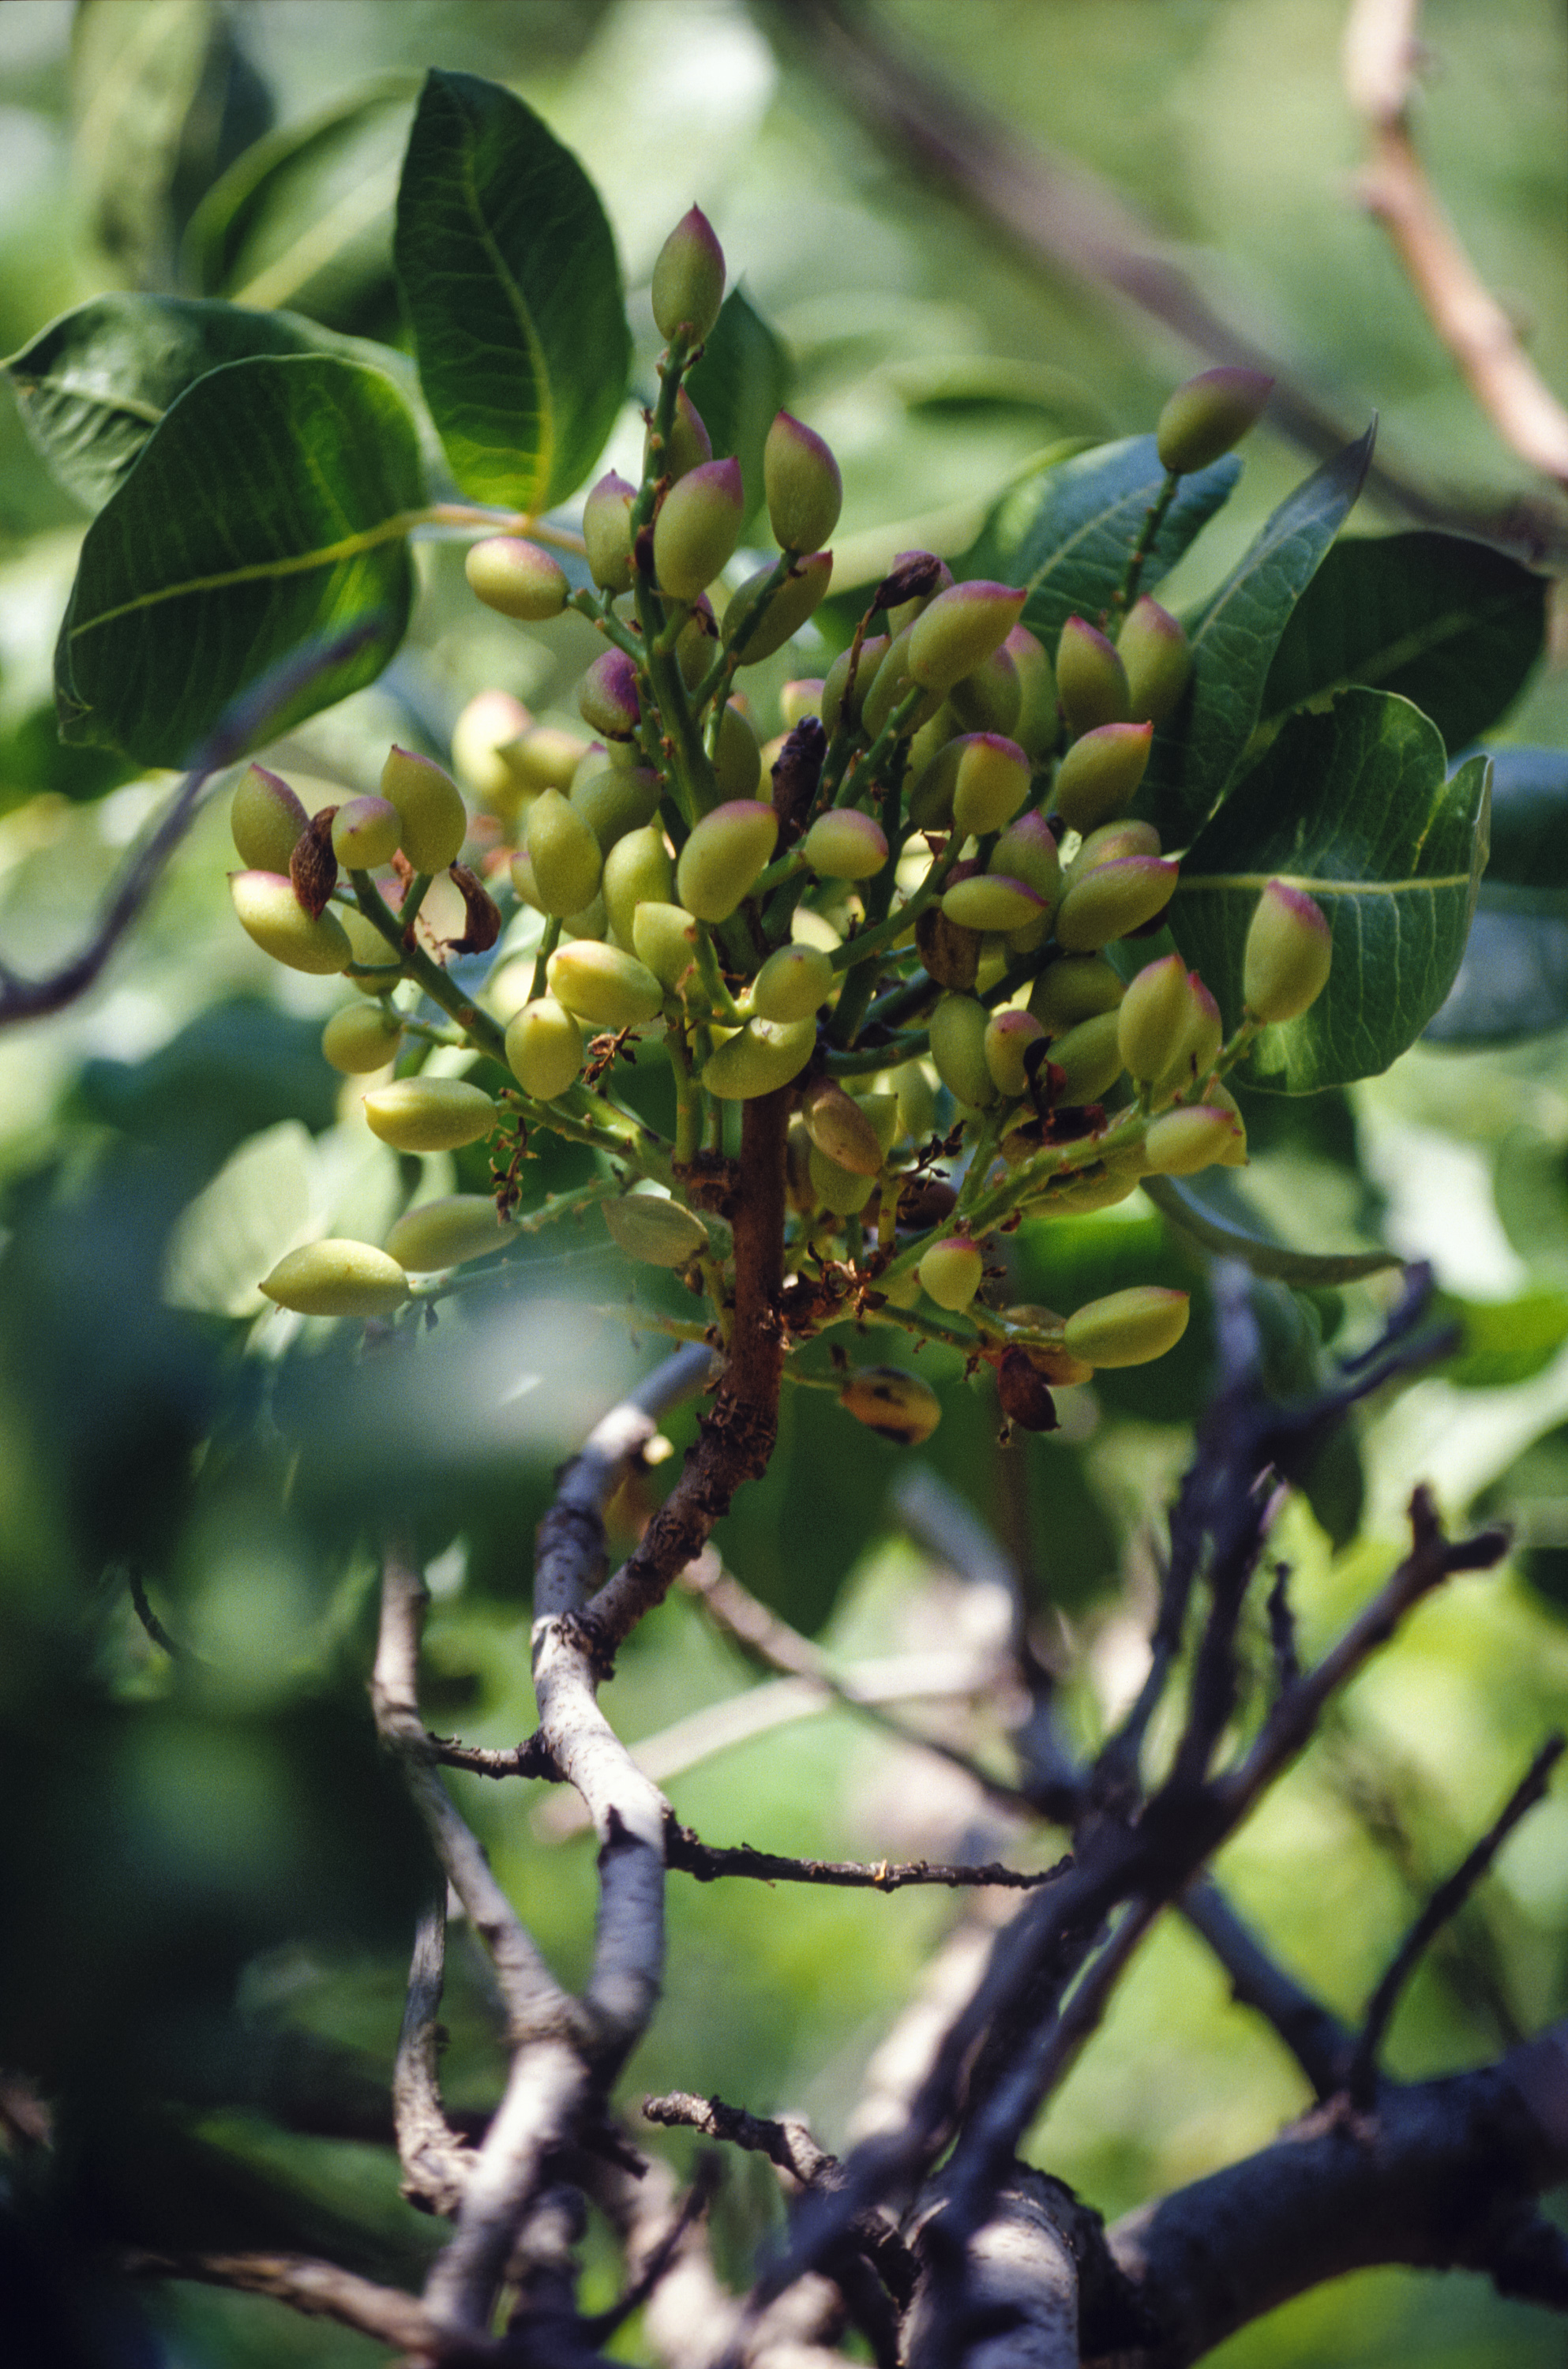 Pistachio tree branch